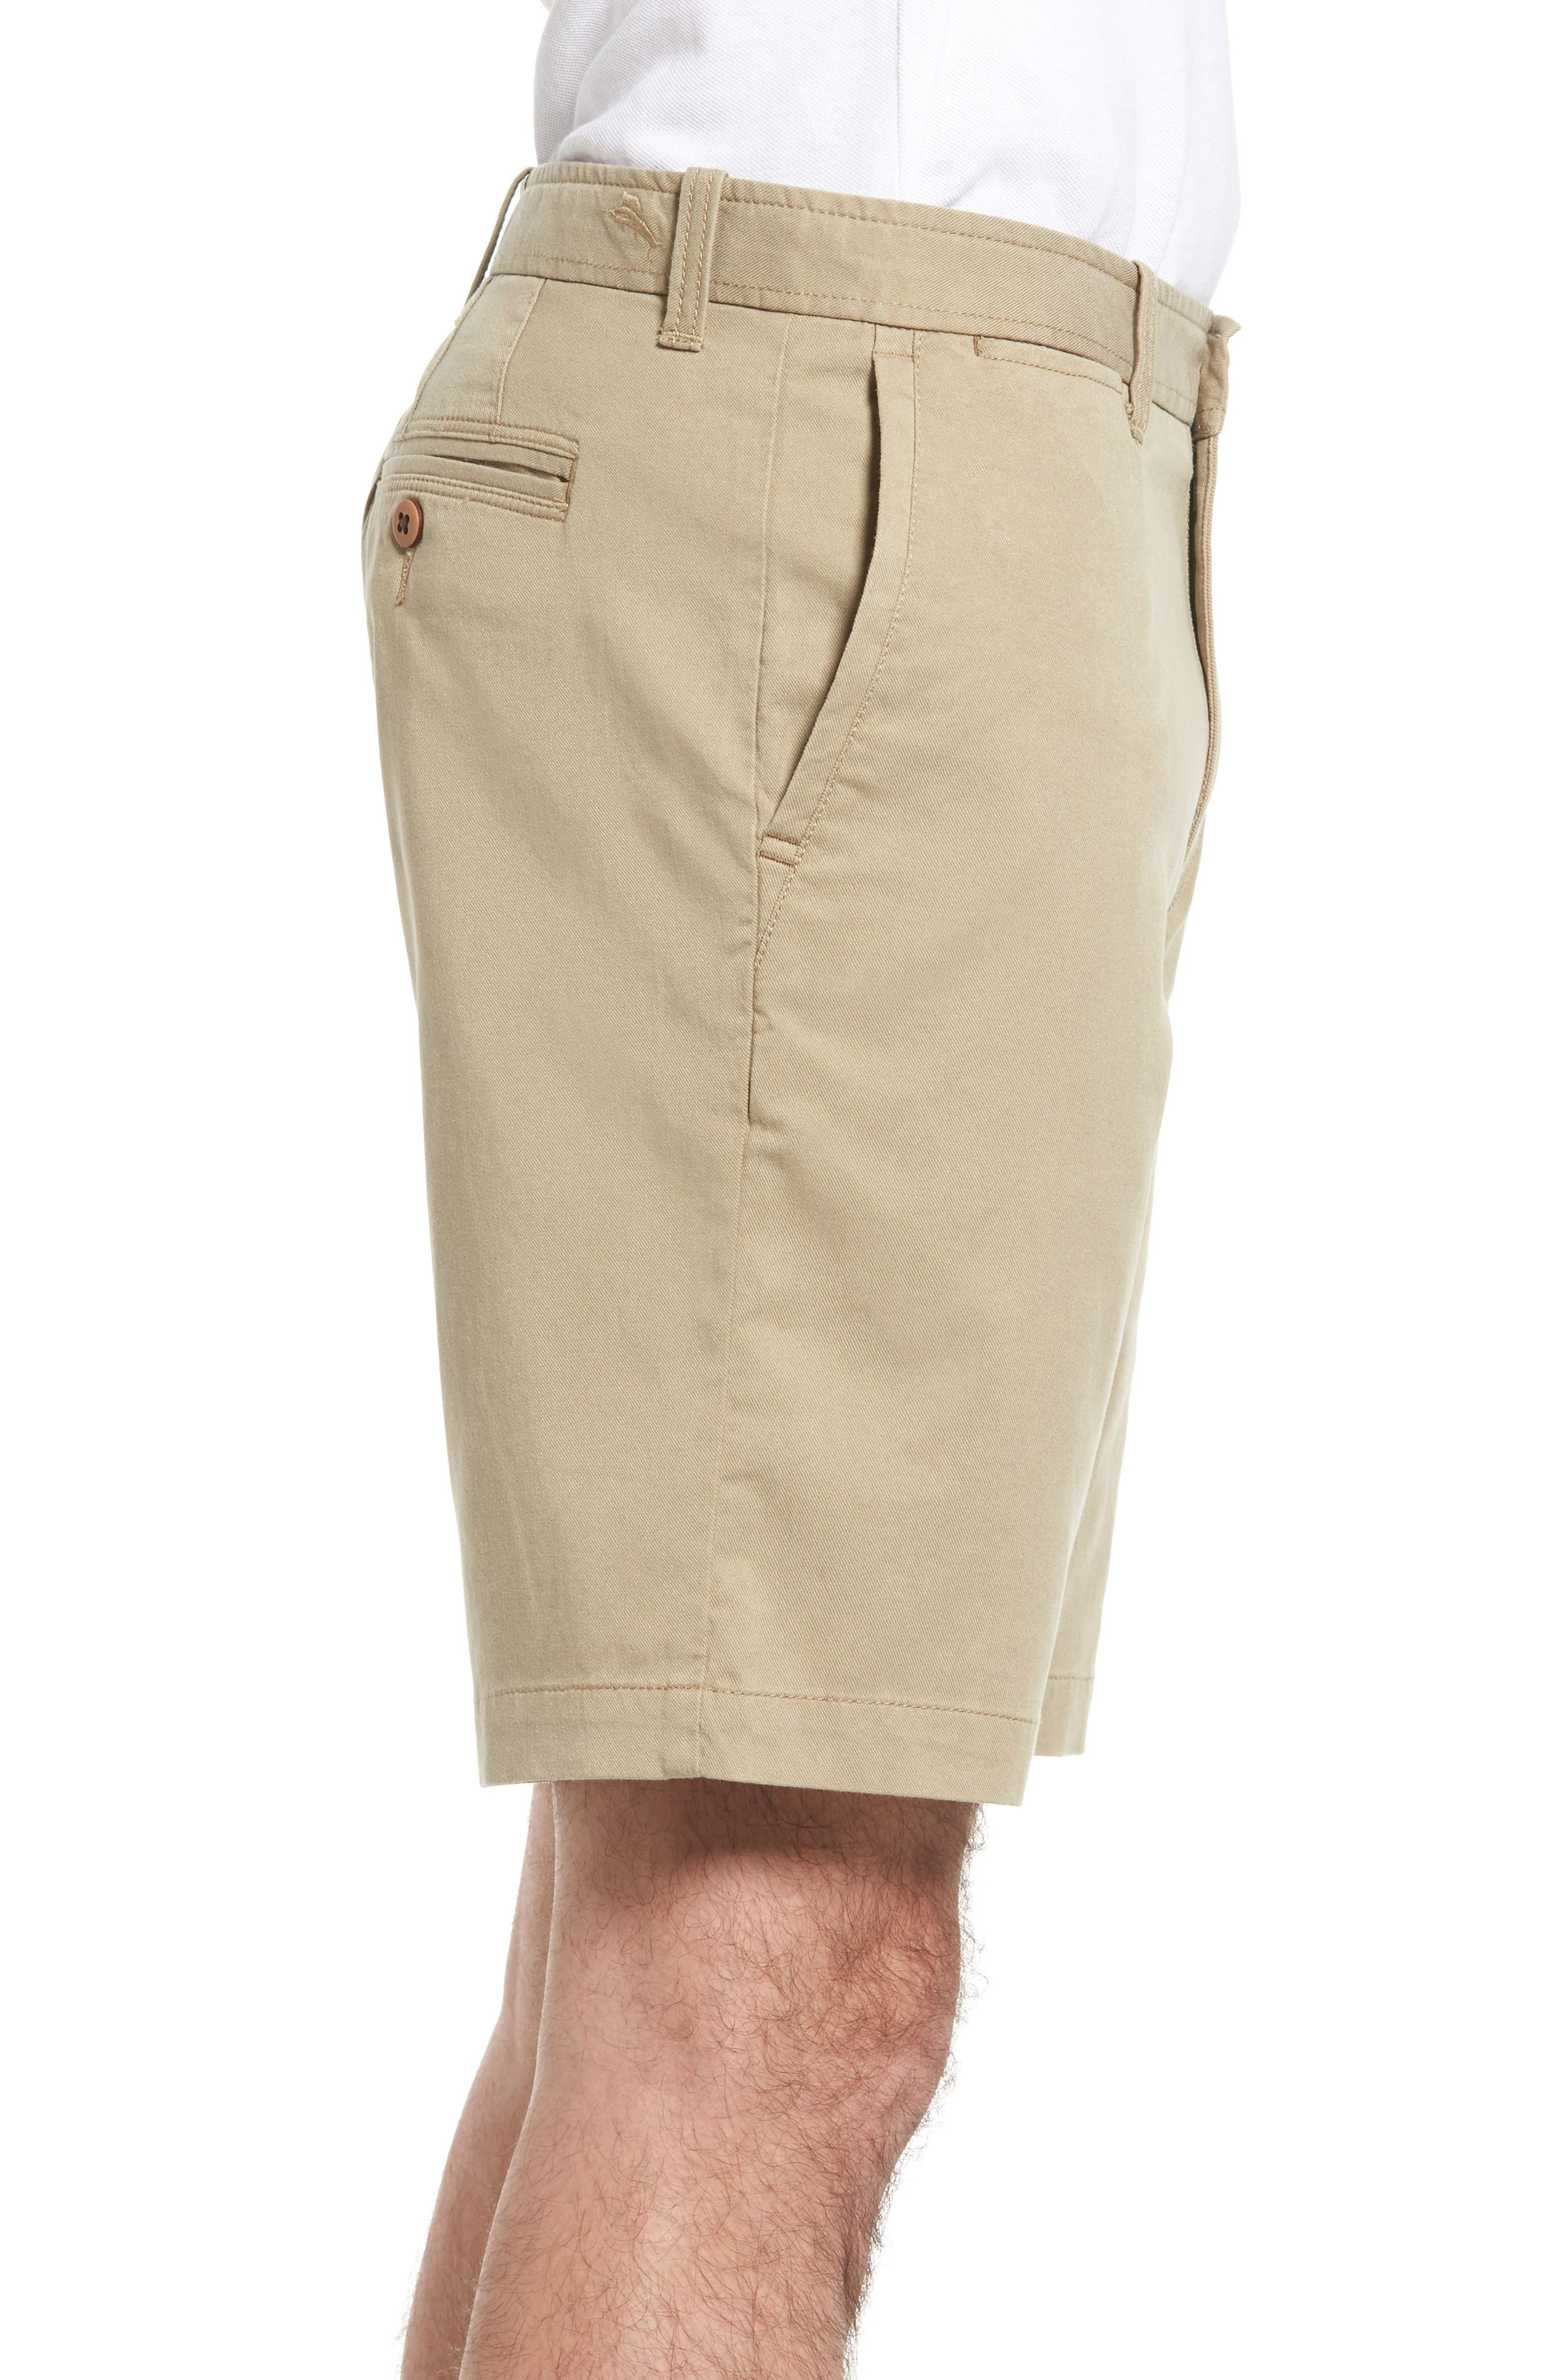 'Offshore' Stretch Twill Shorts,                             Alternate thumbnail 3, color,                             201